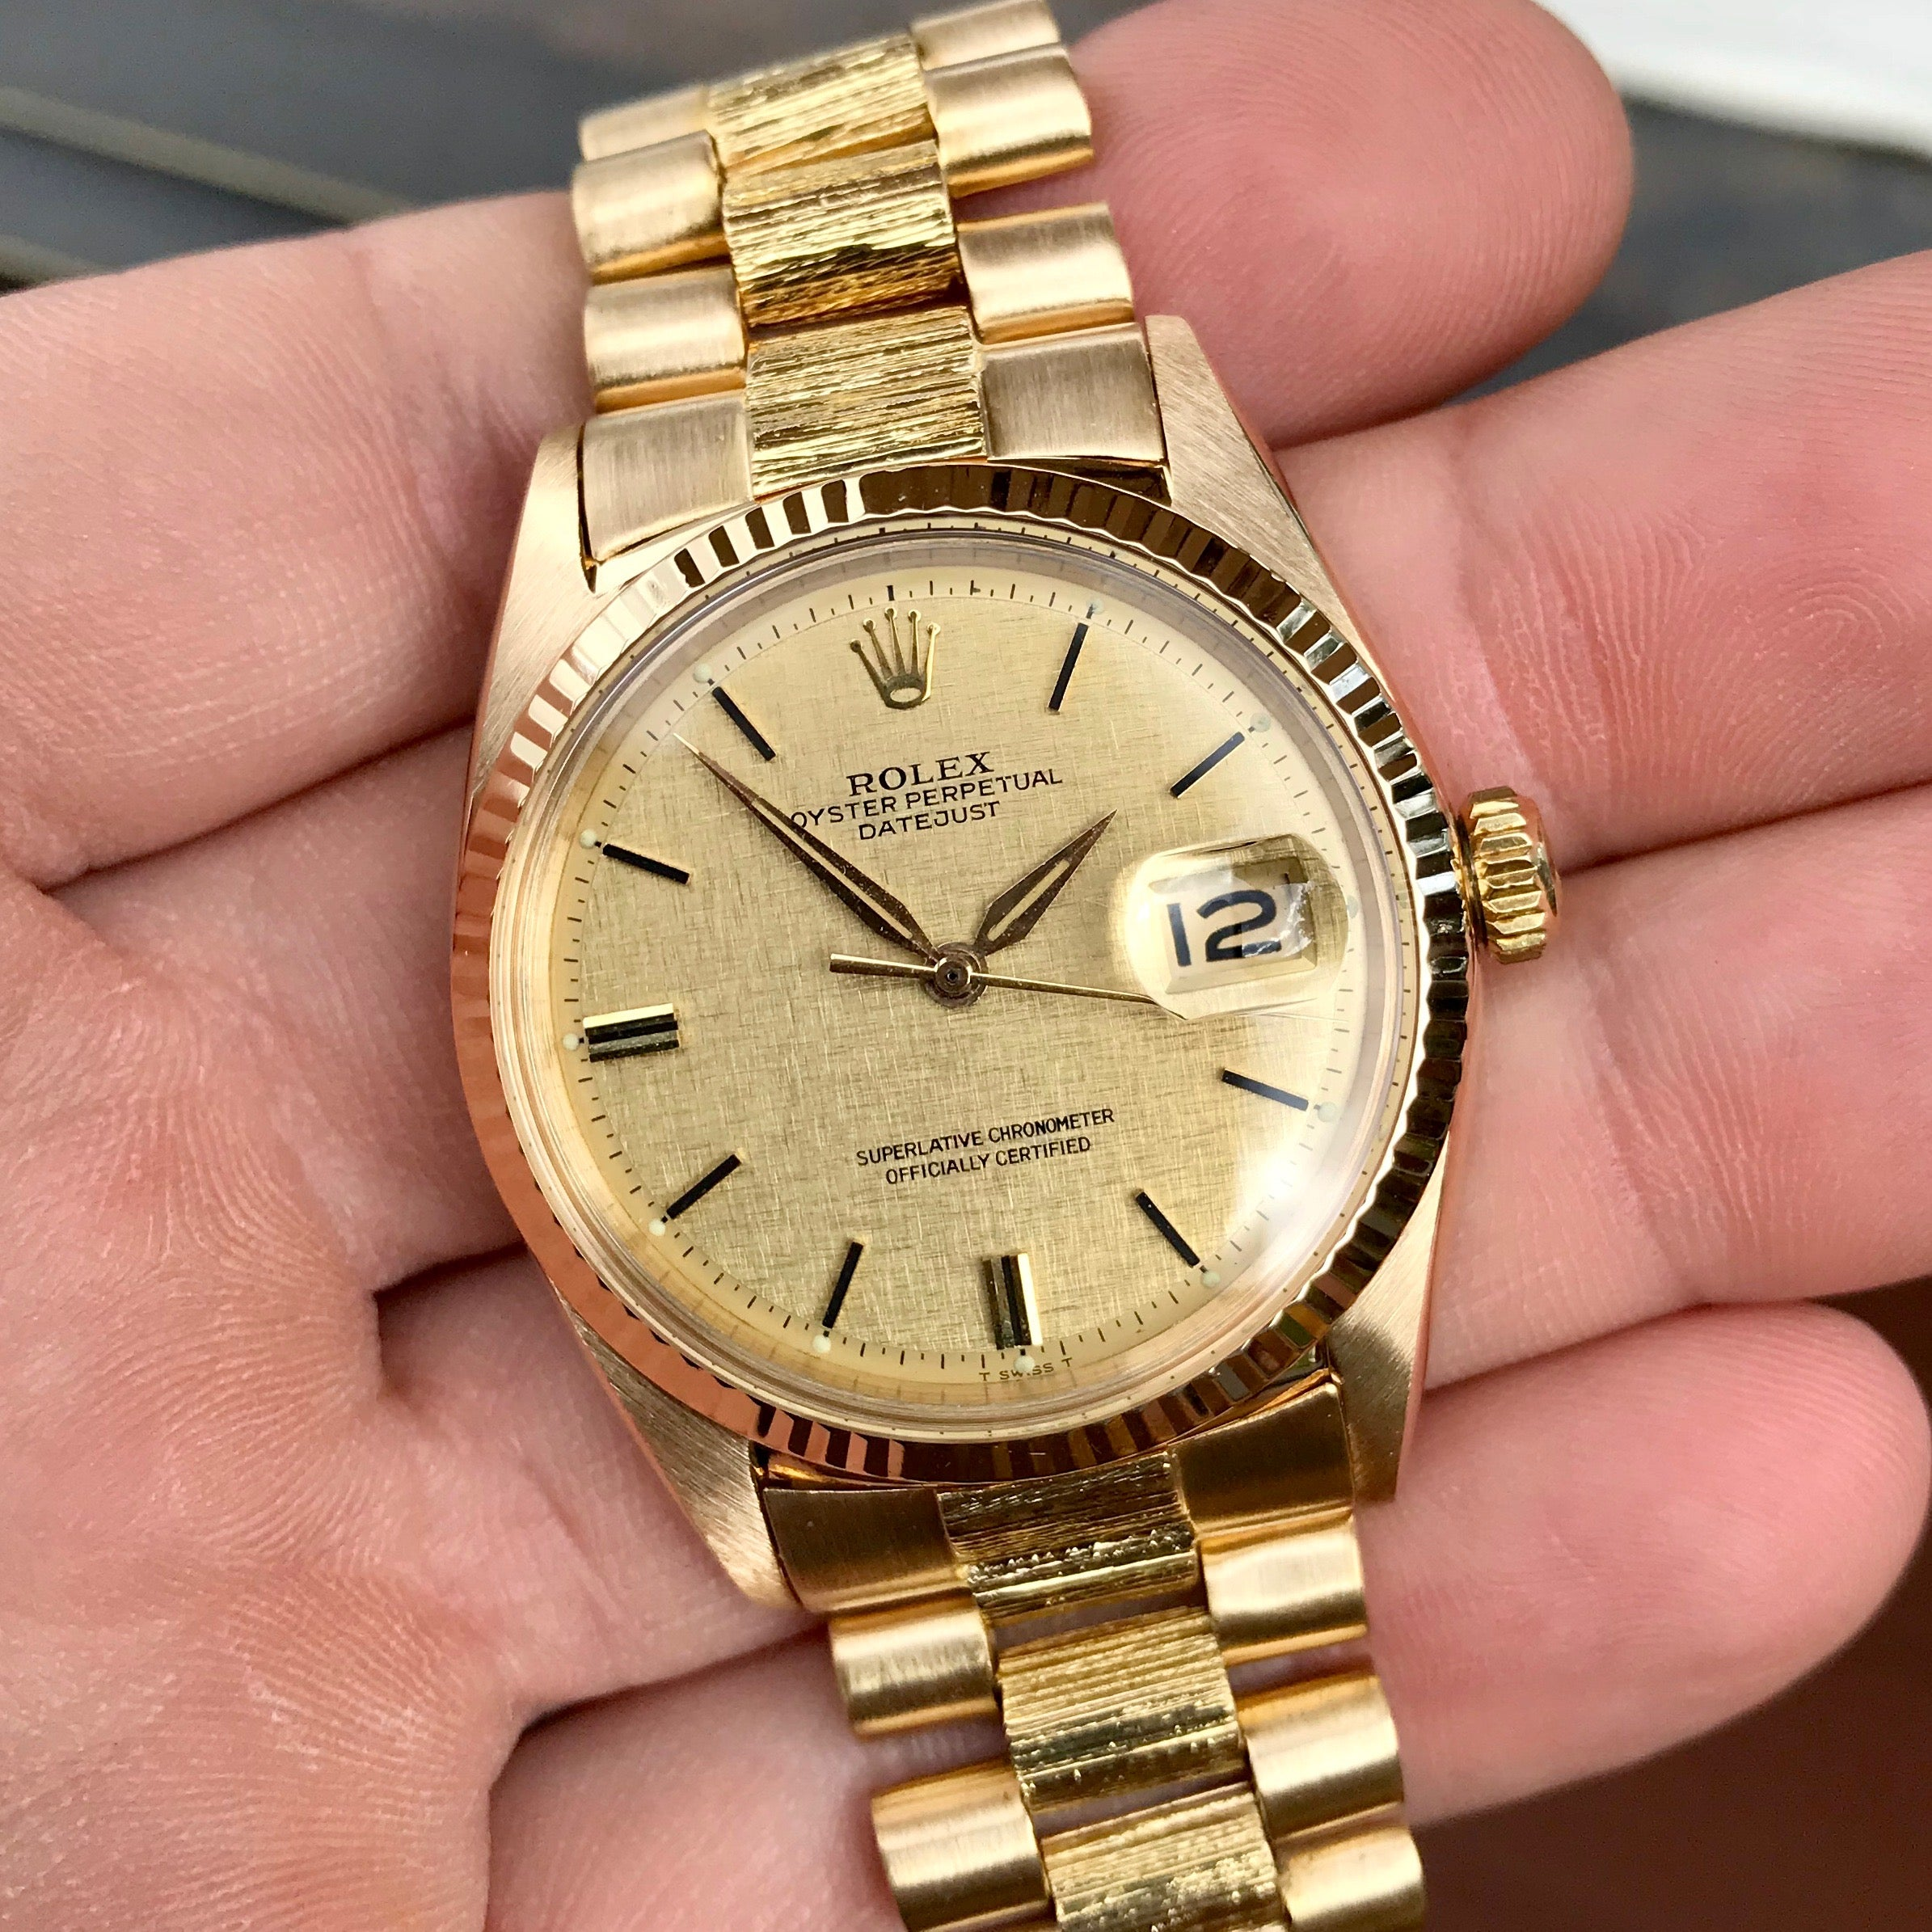 Vintage Rolex Datejust 1601 18K Yellow Gold Champagne Linen Bark Automatic Wristwatch - Hashtag Watch Company